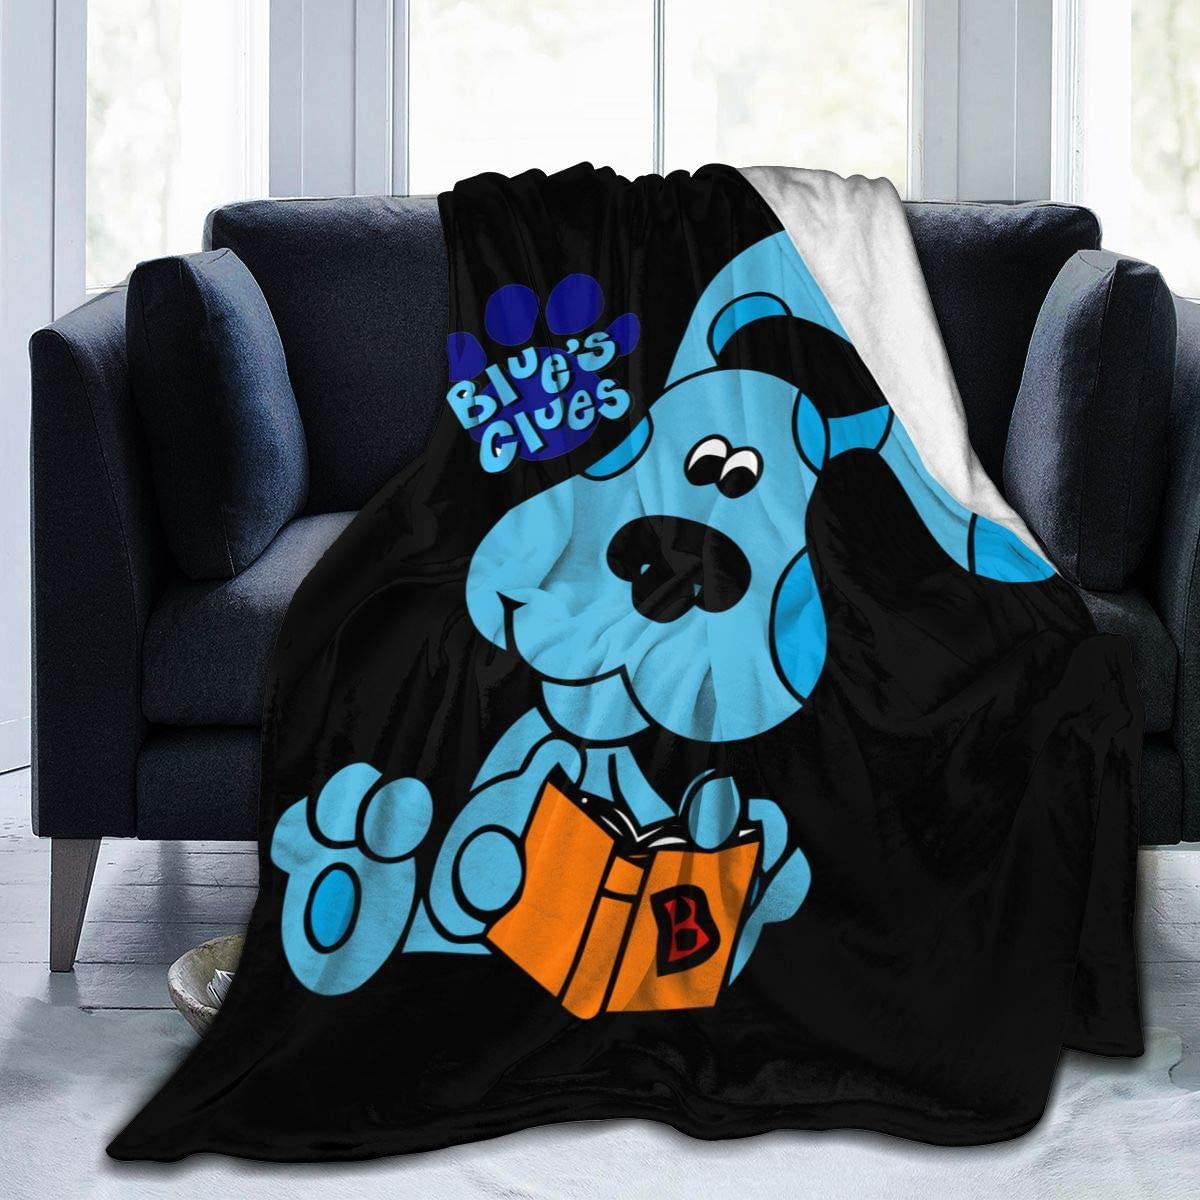 "BodiGulick Blue's Clues Dog Soft and Warm Throw Blanket Soft Micro Fleece Blanket Plush Bed Couch Throw Blanket 50""x40"""